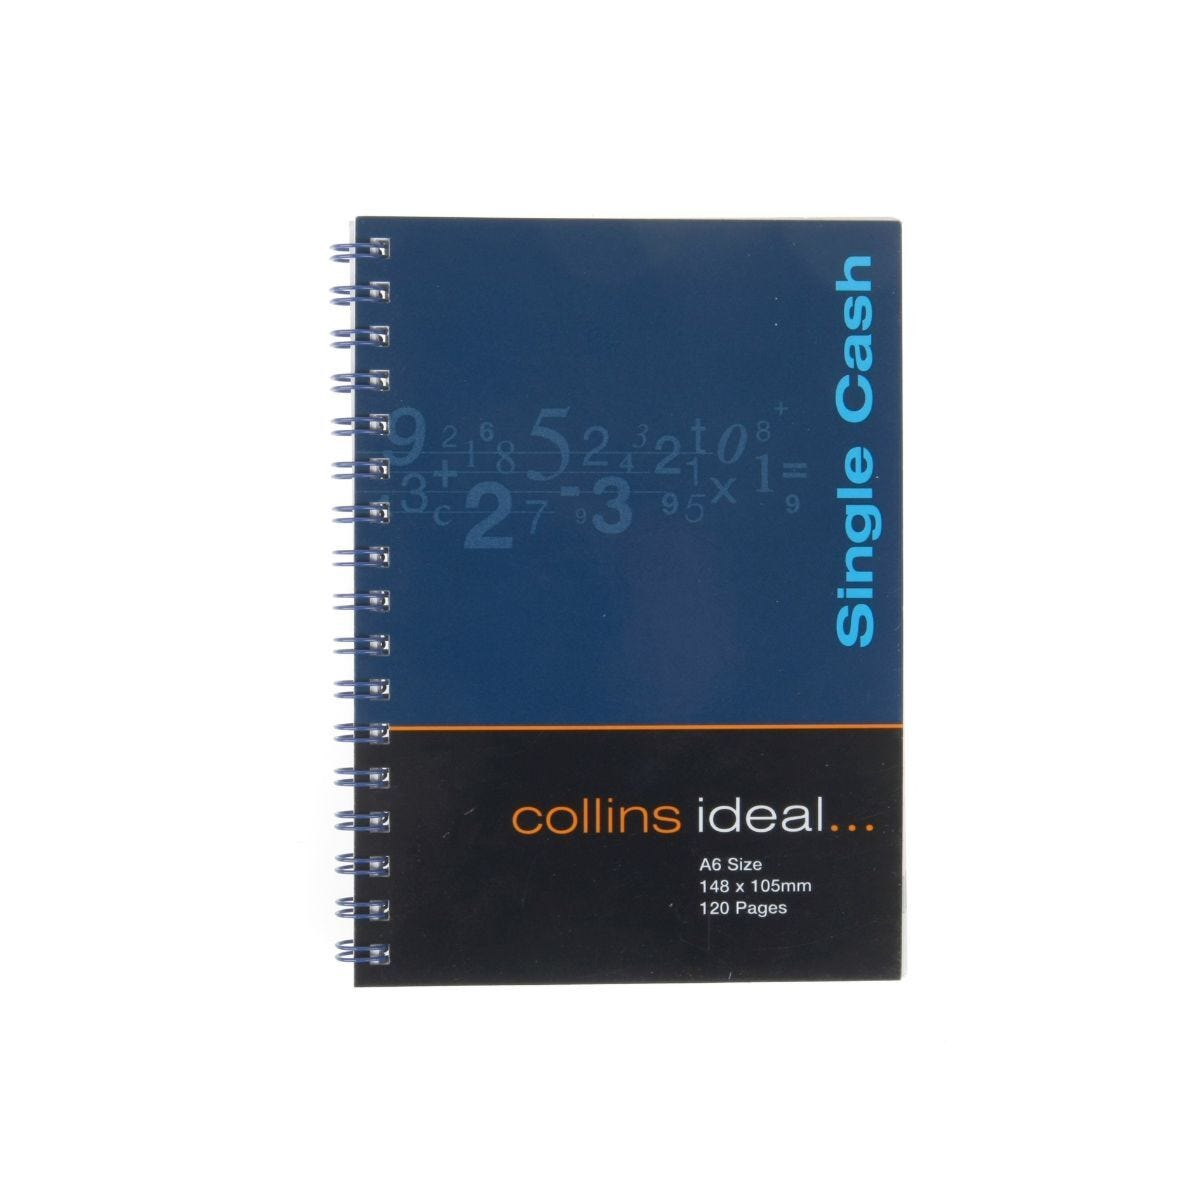 Collins deal Account Book A6 Single Cash 120 Pages 60 Sheets